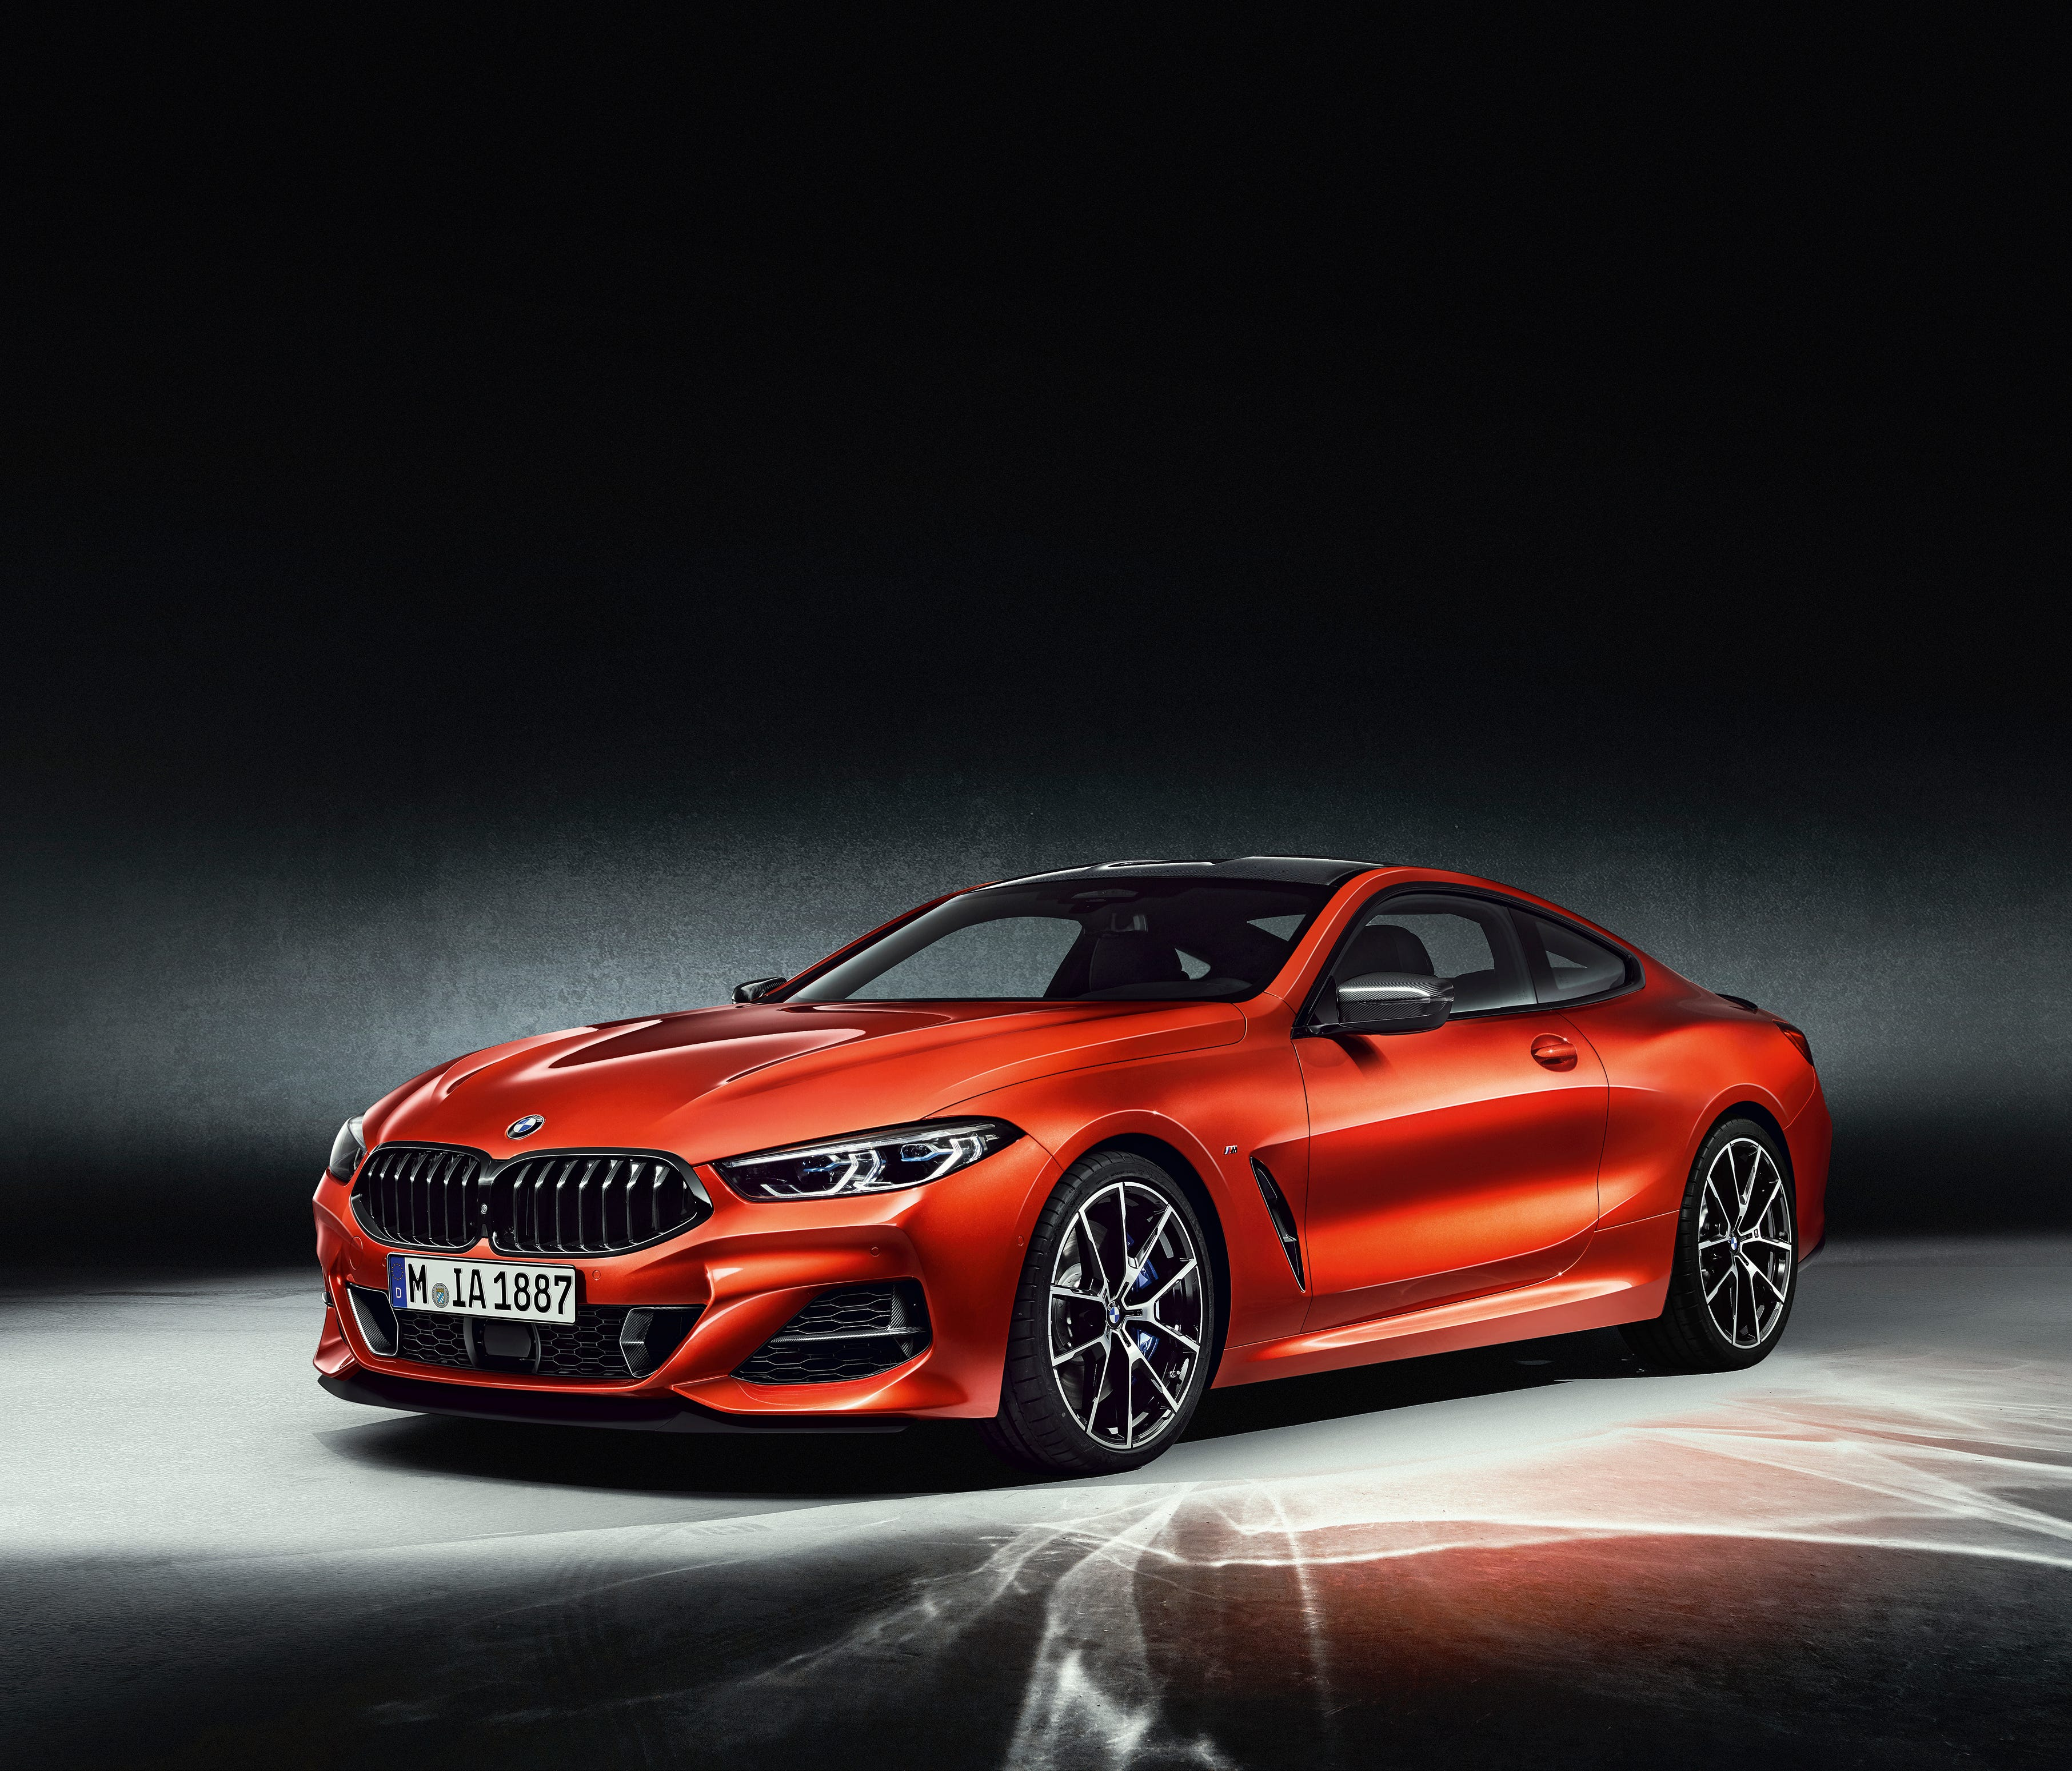 BMW is bring back the 8 Series name for a big, sexy two-door coupe. The M850i xDrive coupe will be powered by a 4.4-liter V-8 engine producing 523 horsepower.